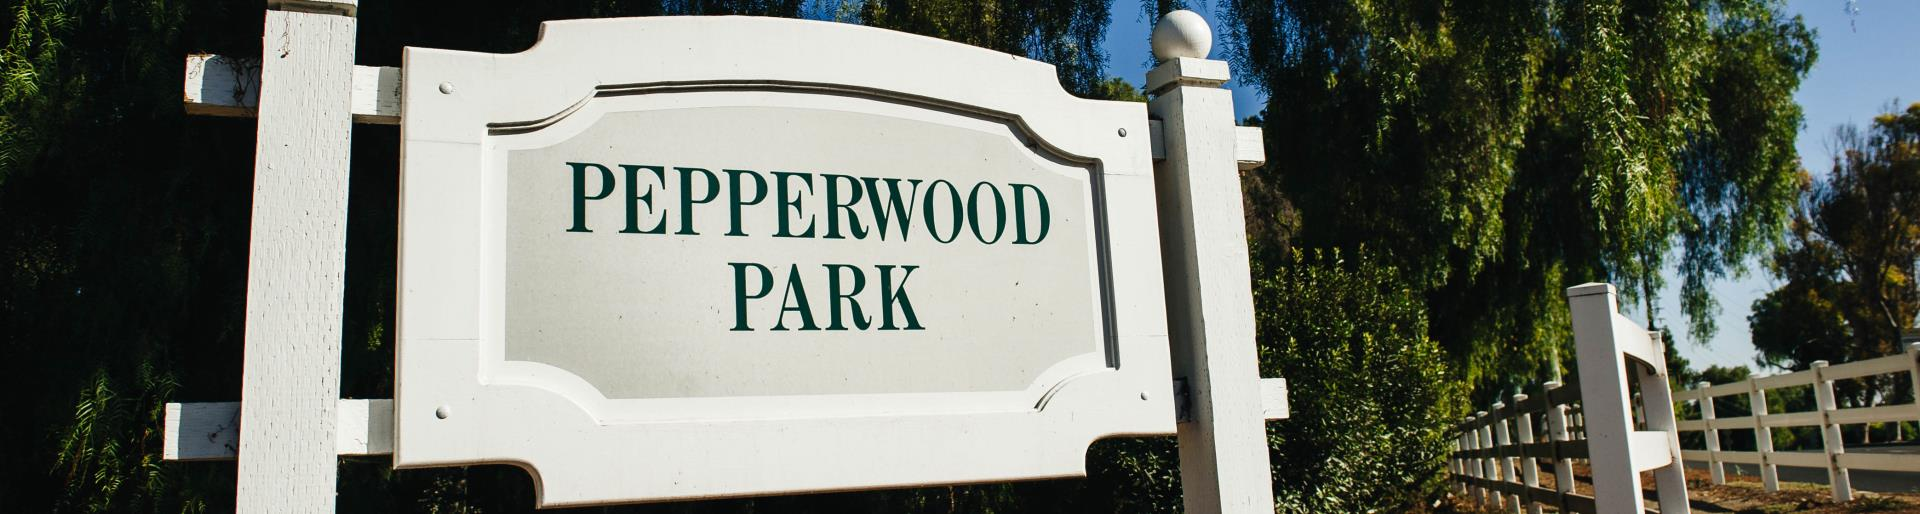 Pepperwood Park